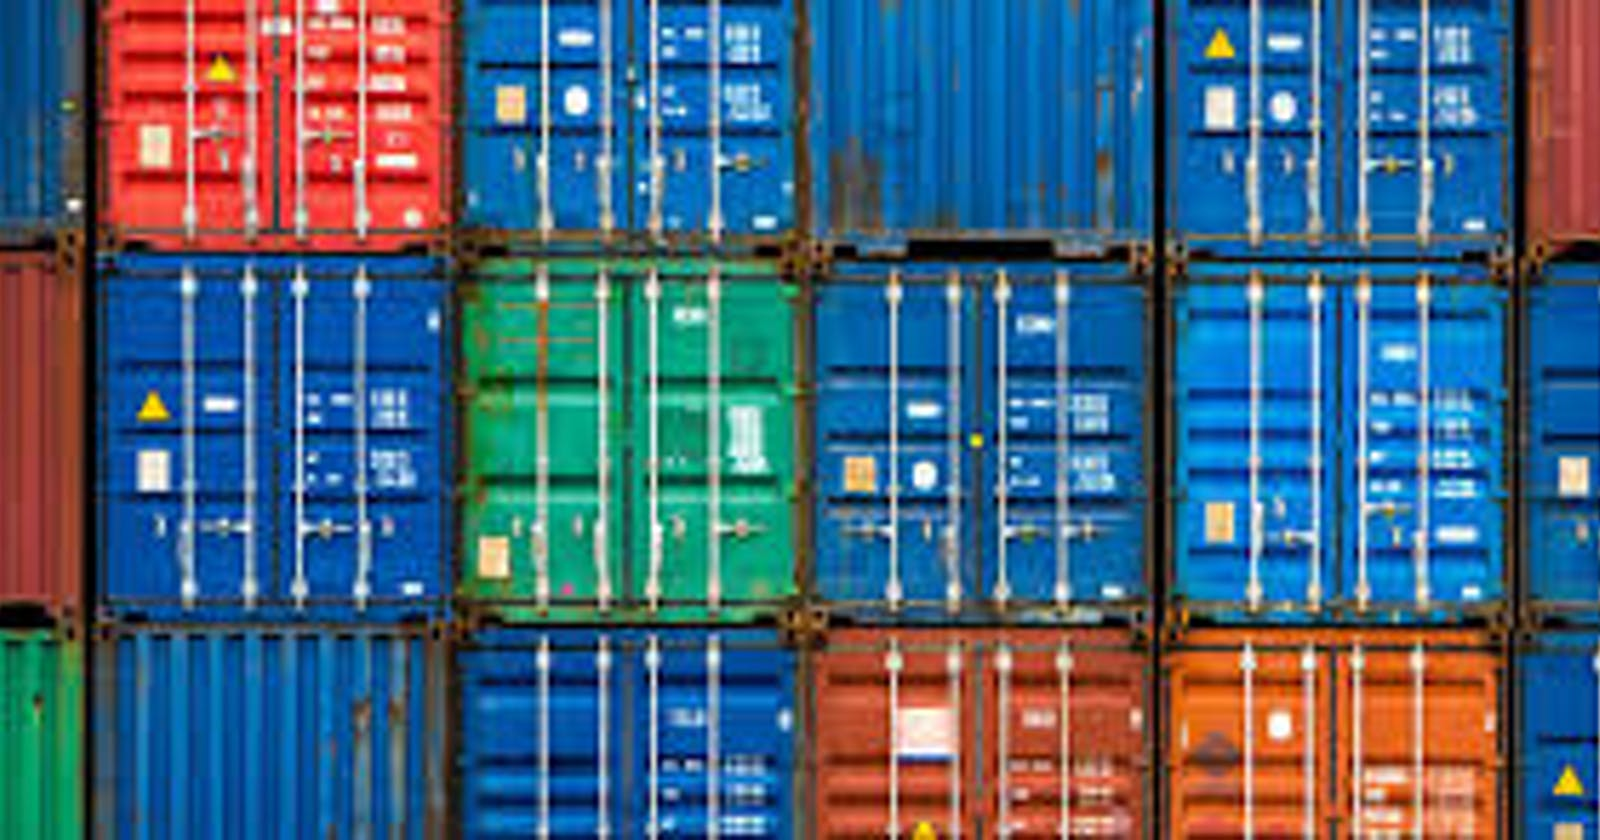 Scale your containers with ansible on a non kubernetes/swarm environment